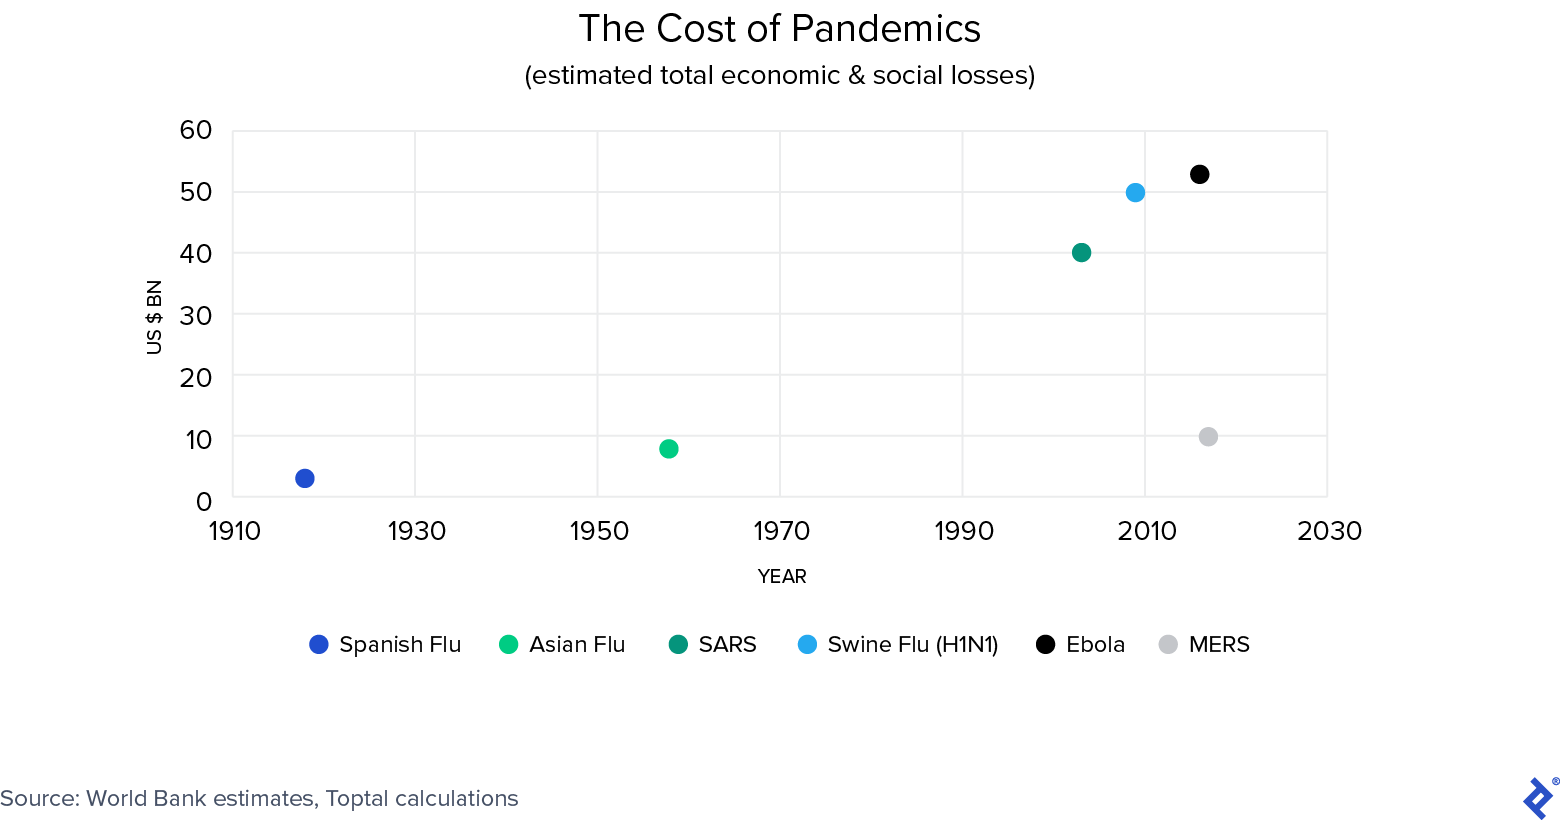 Cost of pandemics